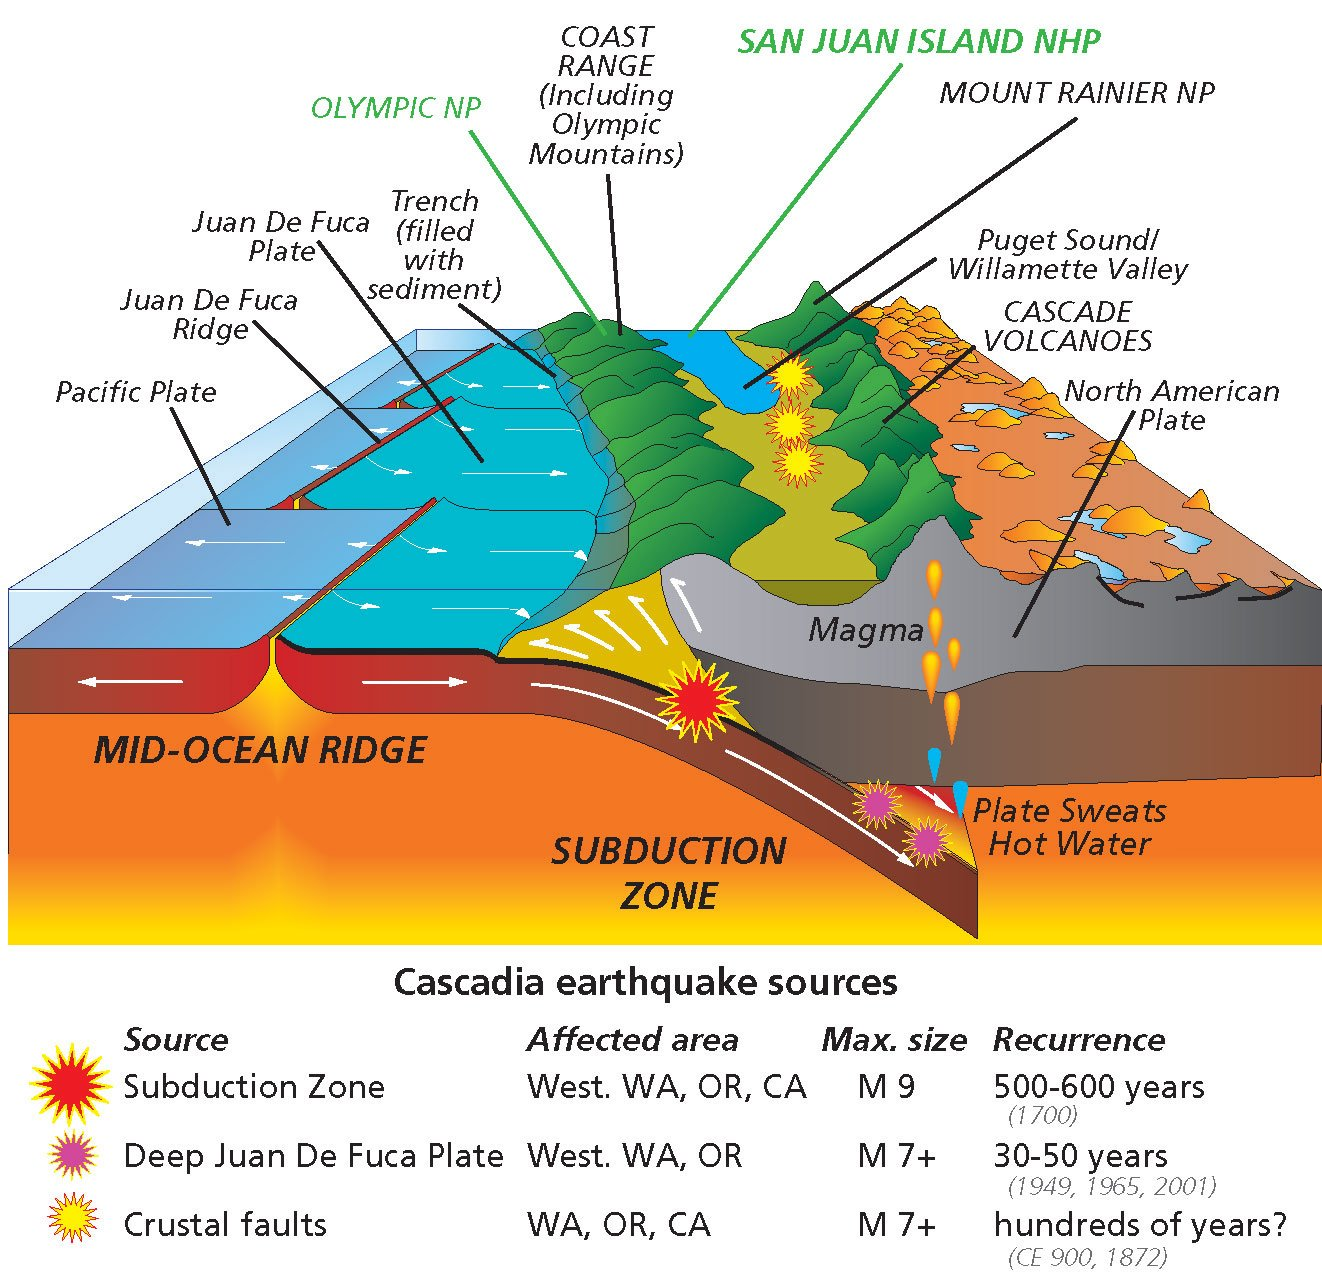 parks-plates cascadia subduction zone revised-01